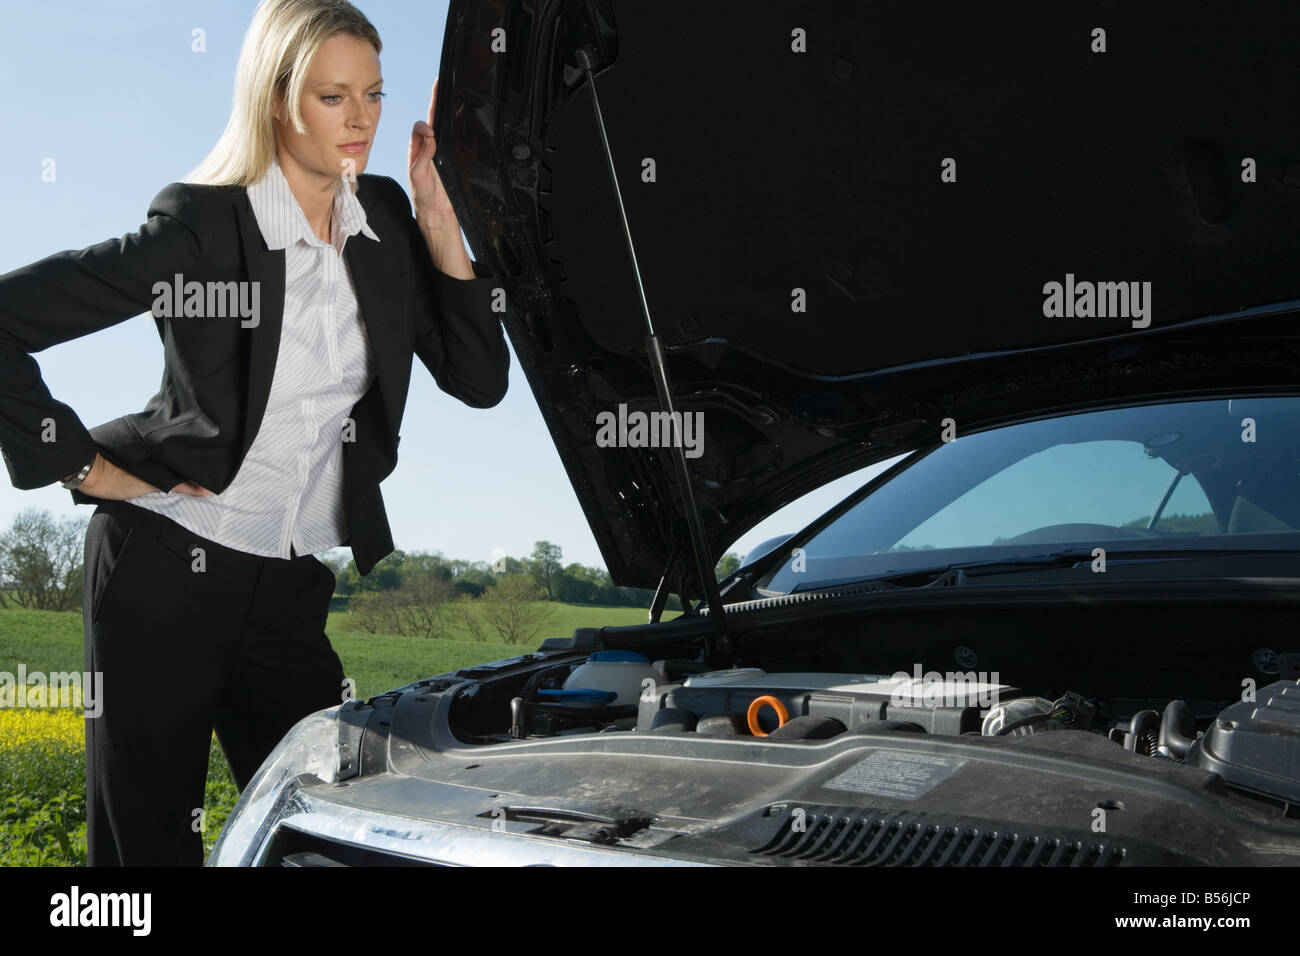 A woman having automobile trouble Stock Photo